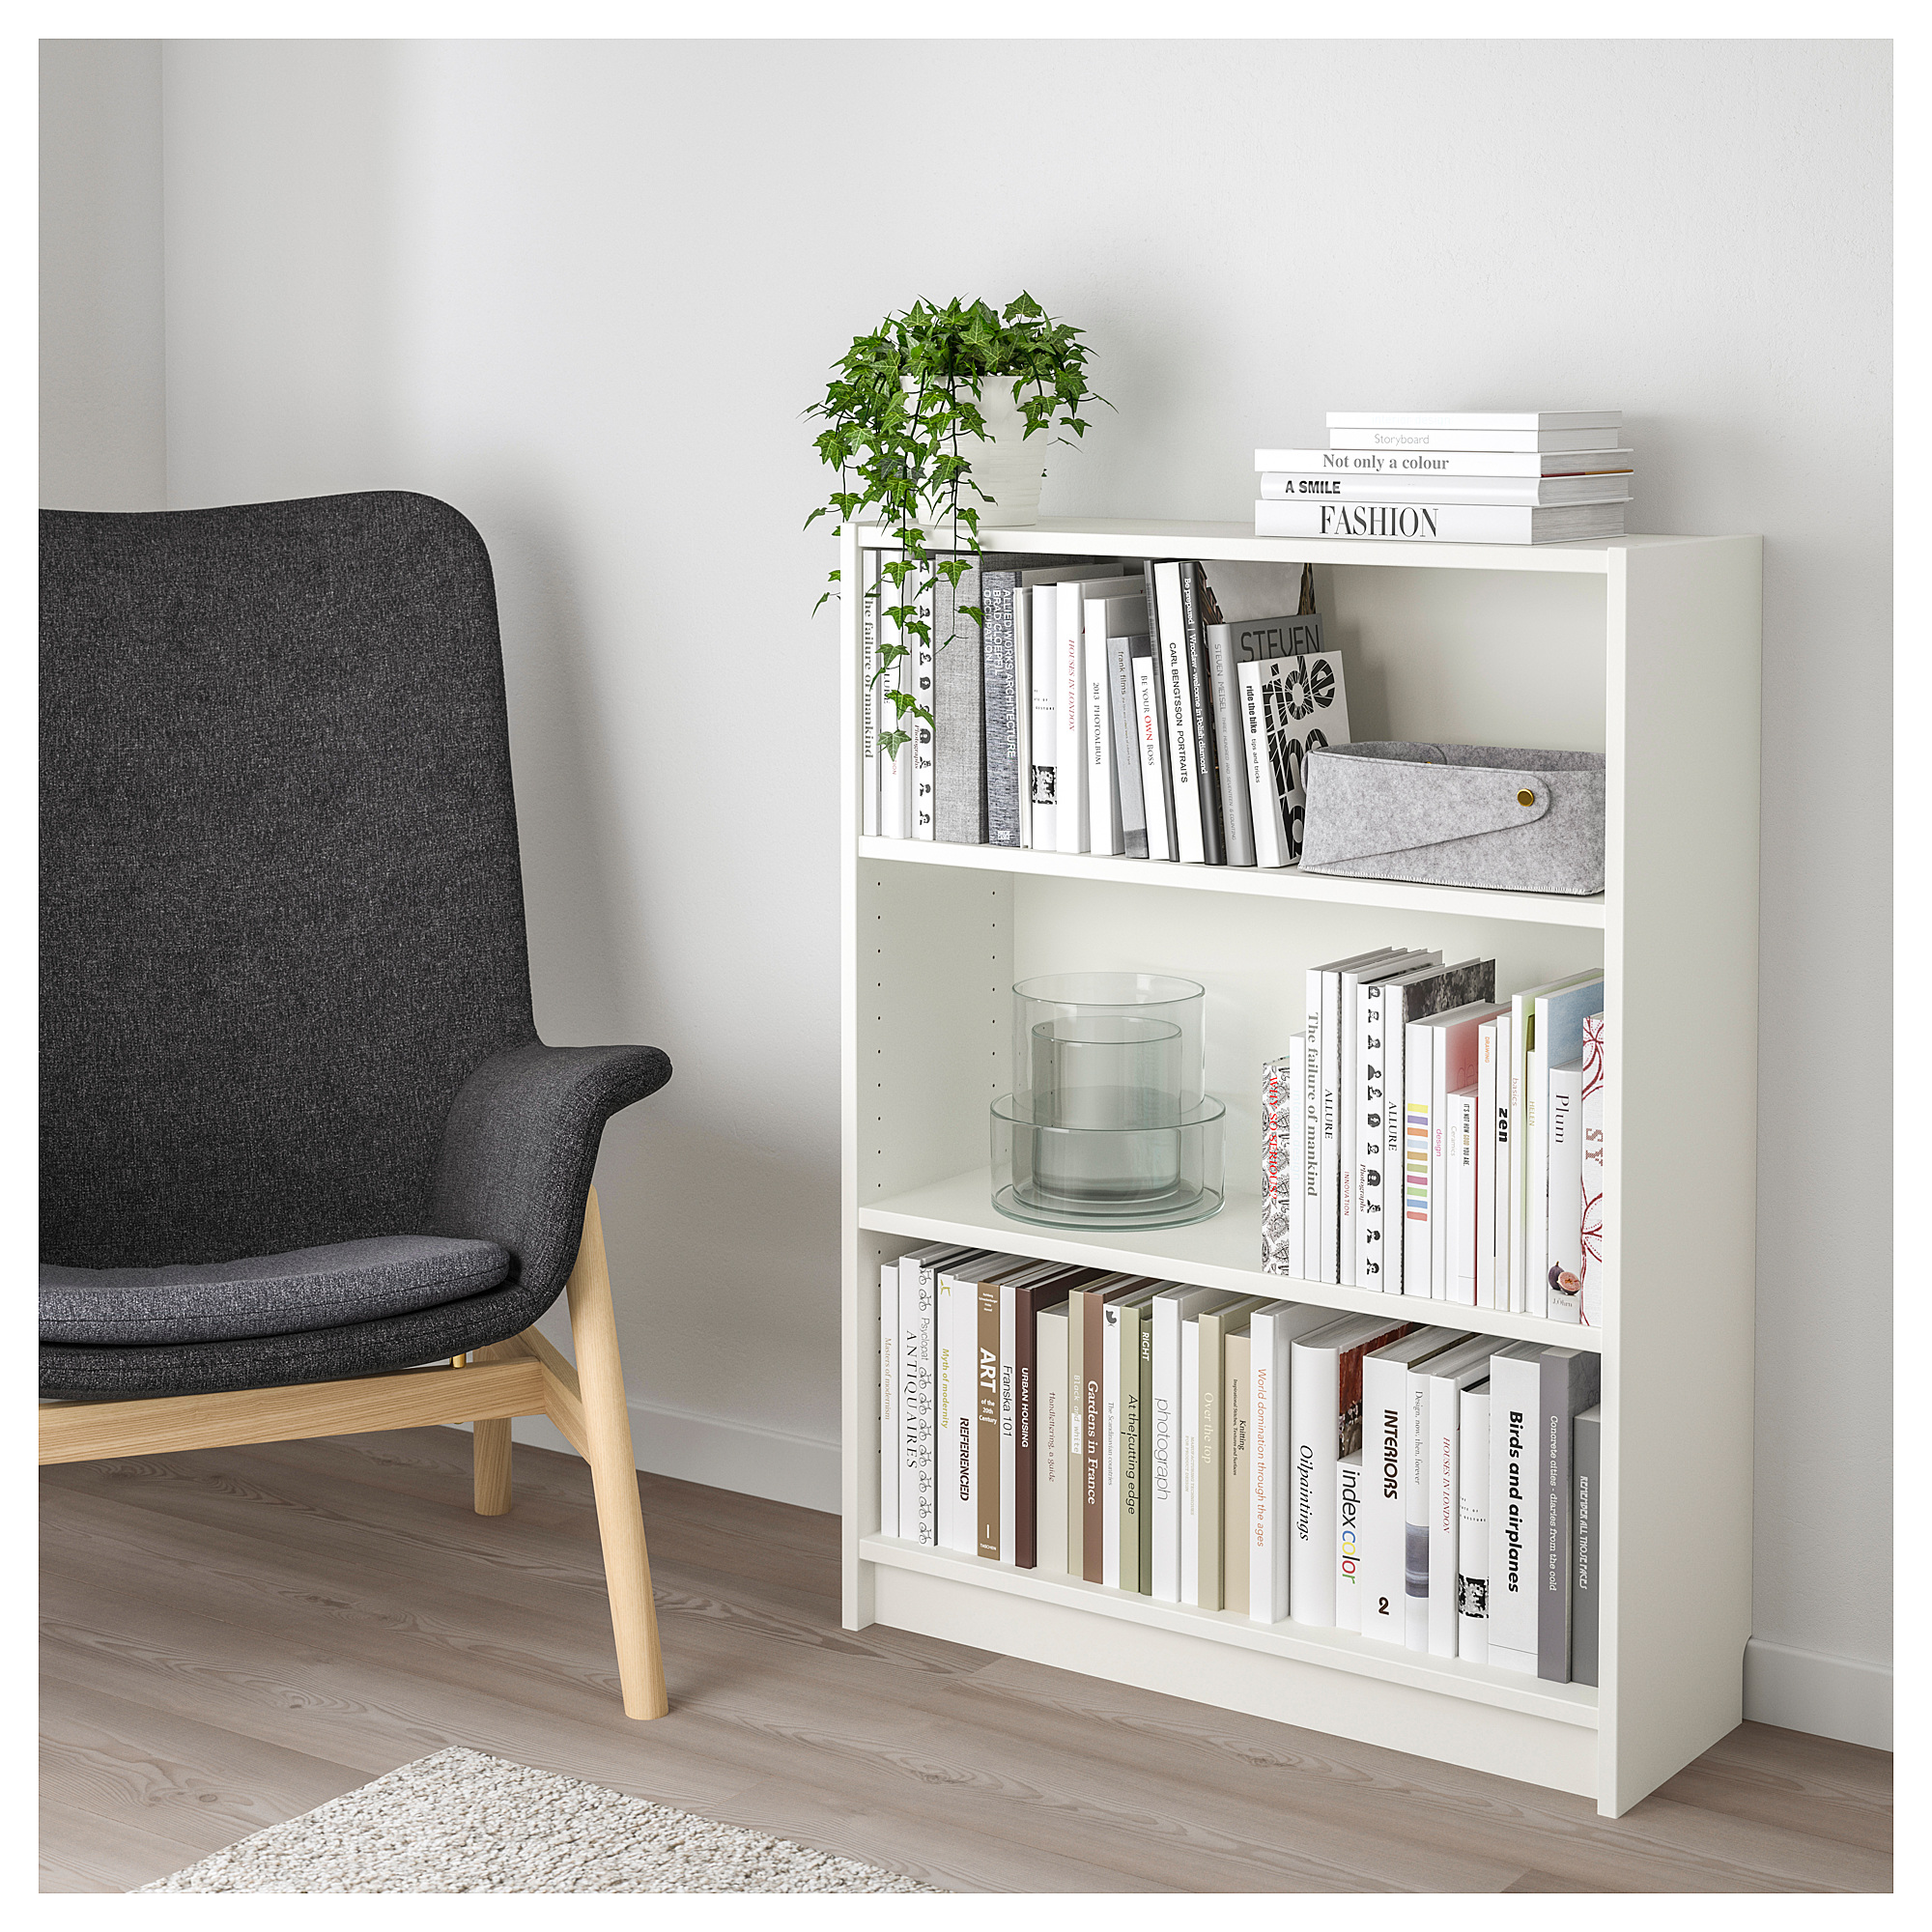 Photo courtesy of Ikea. Click to view product.